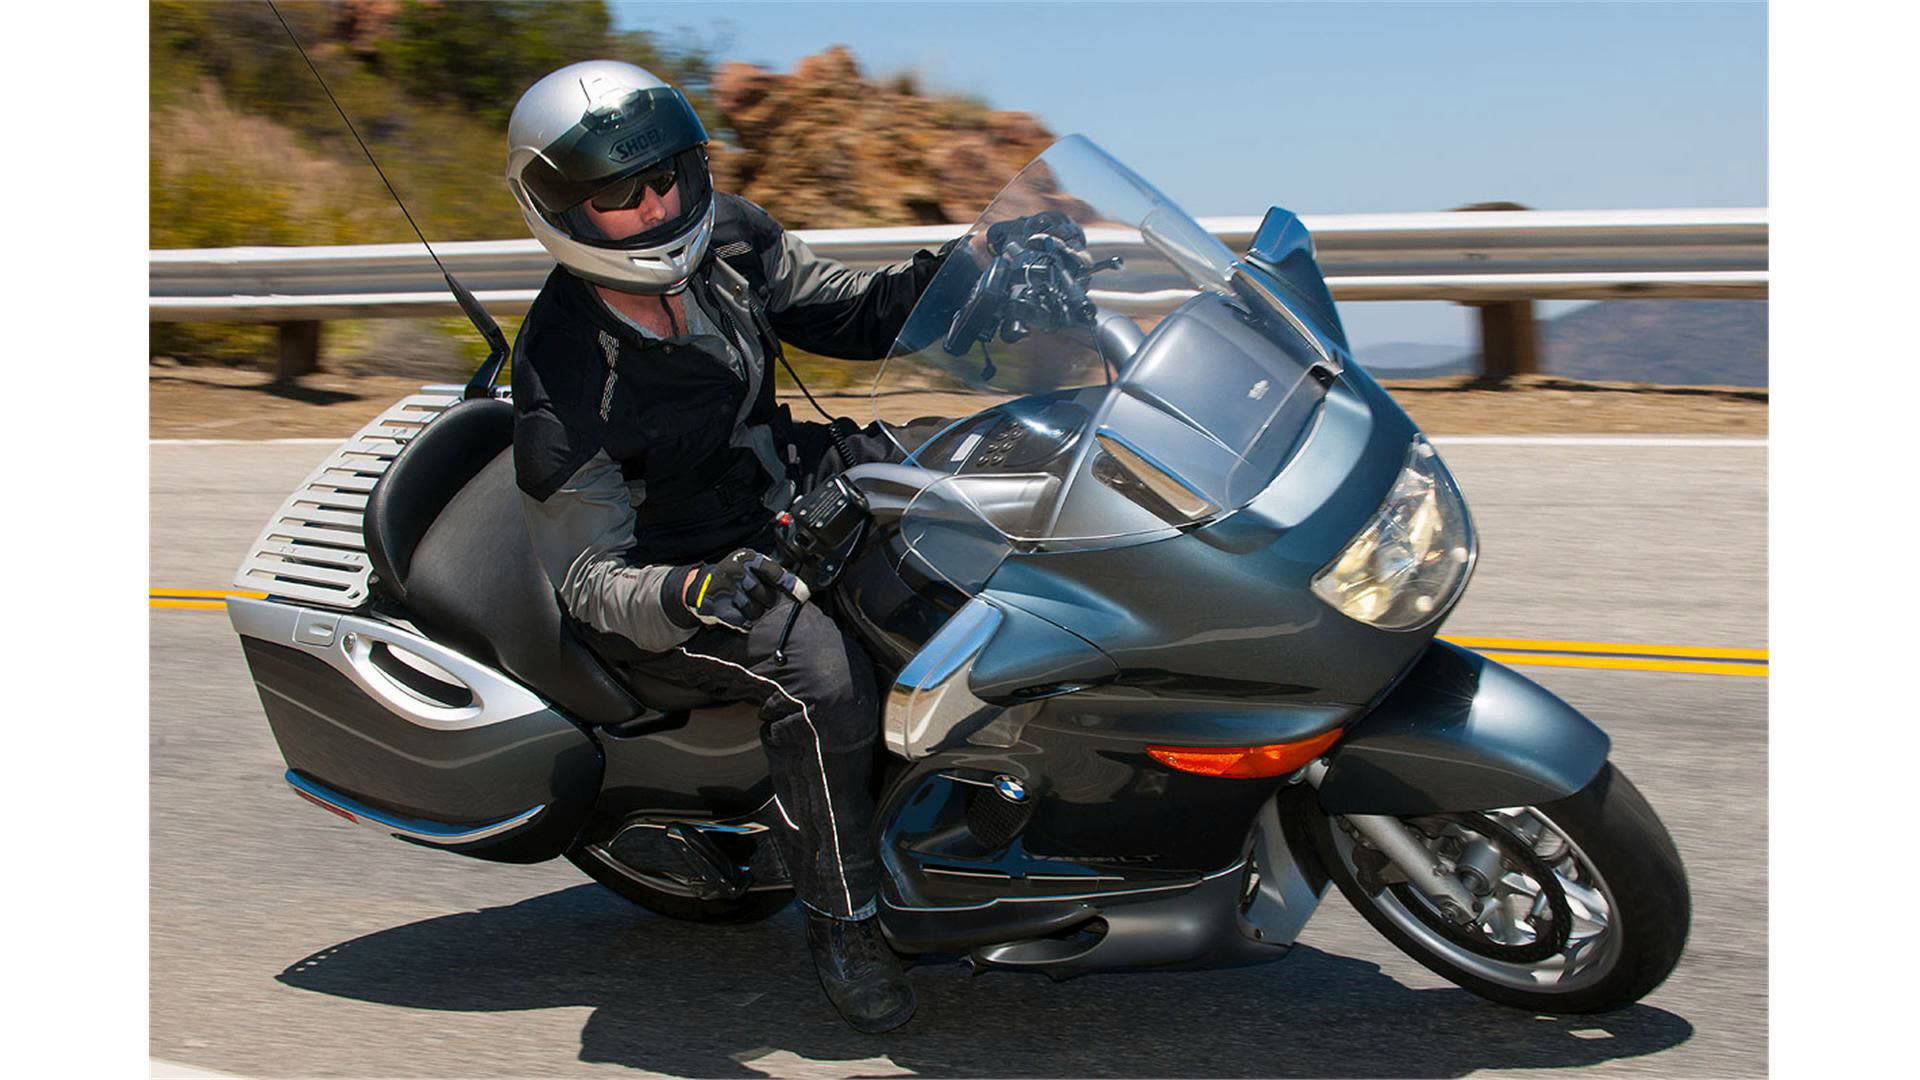 Back Download BMW K1200LT picture # 5, size 1920x1080 Next